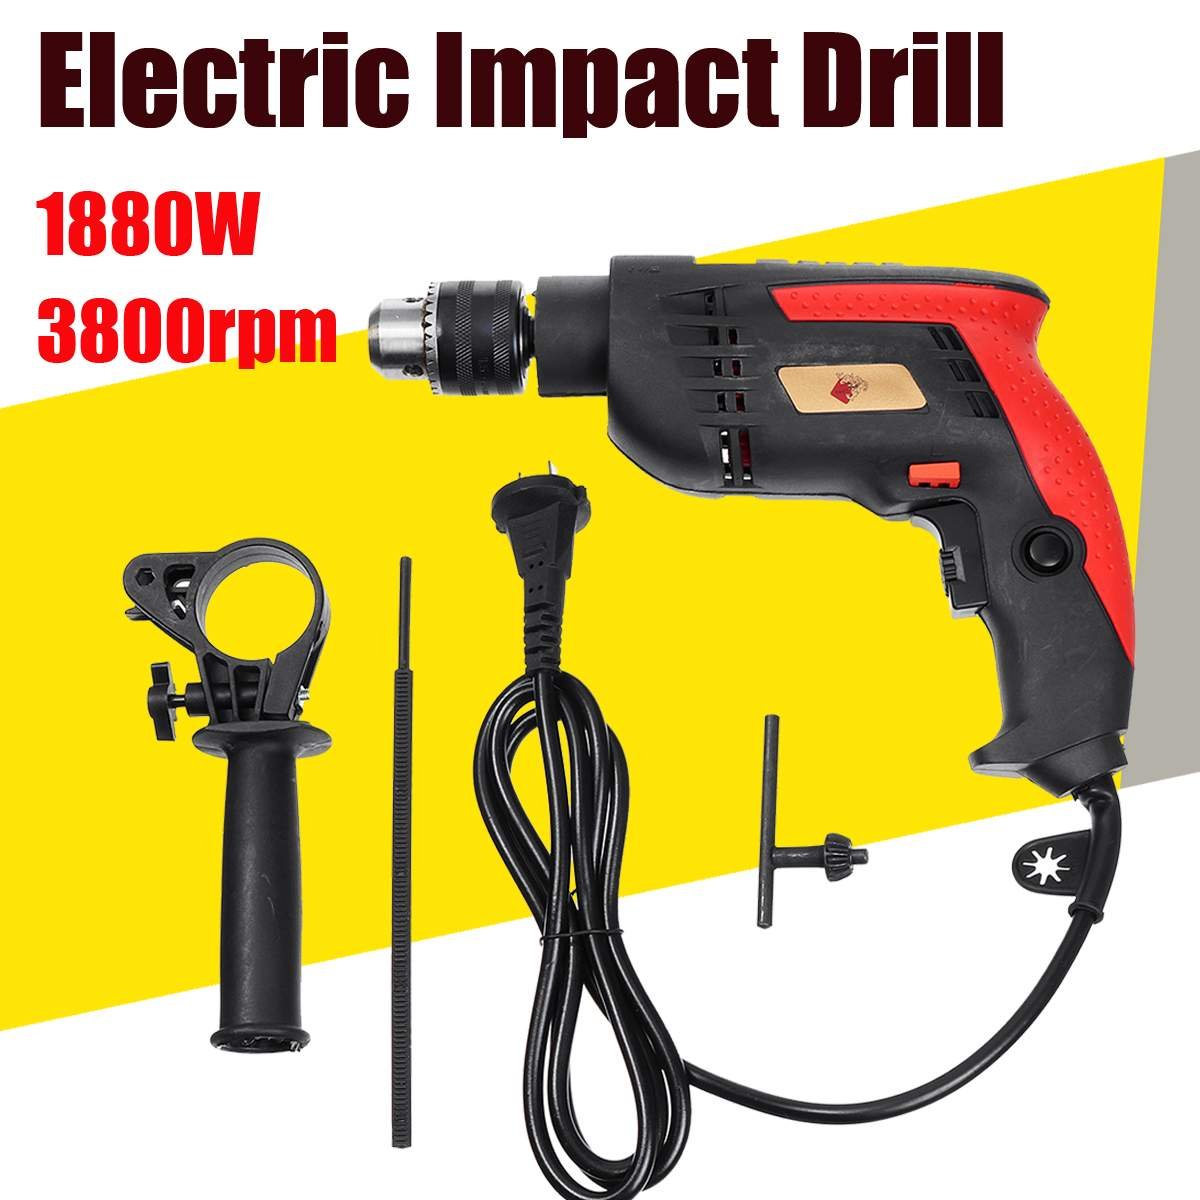 New Style 1880W 3800RPM Electric Impact Drill Household Electric Flat Drill 13mm Chuck Power ToolNew Style 1880W 3800RPM Electric Impact Drill Household Electric Flat Drill 13mm Chuck Power Tool